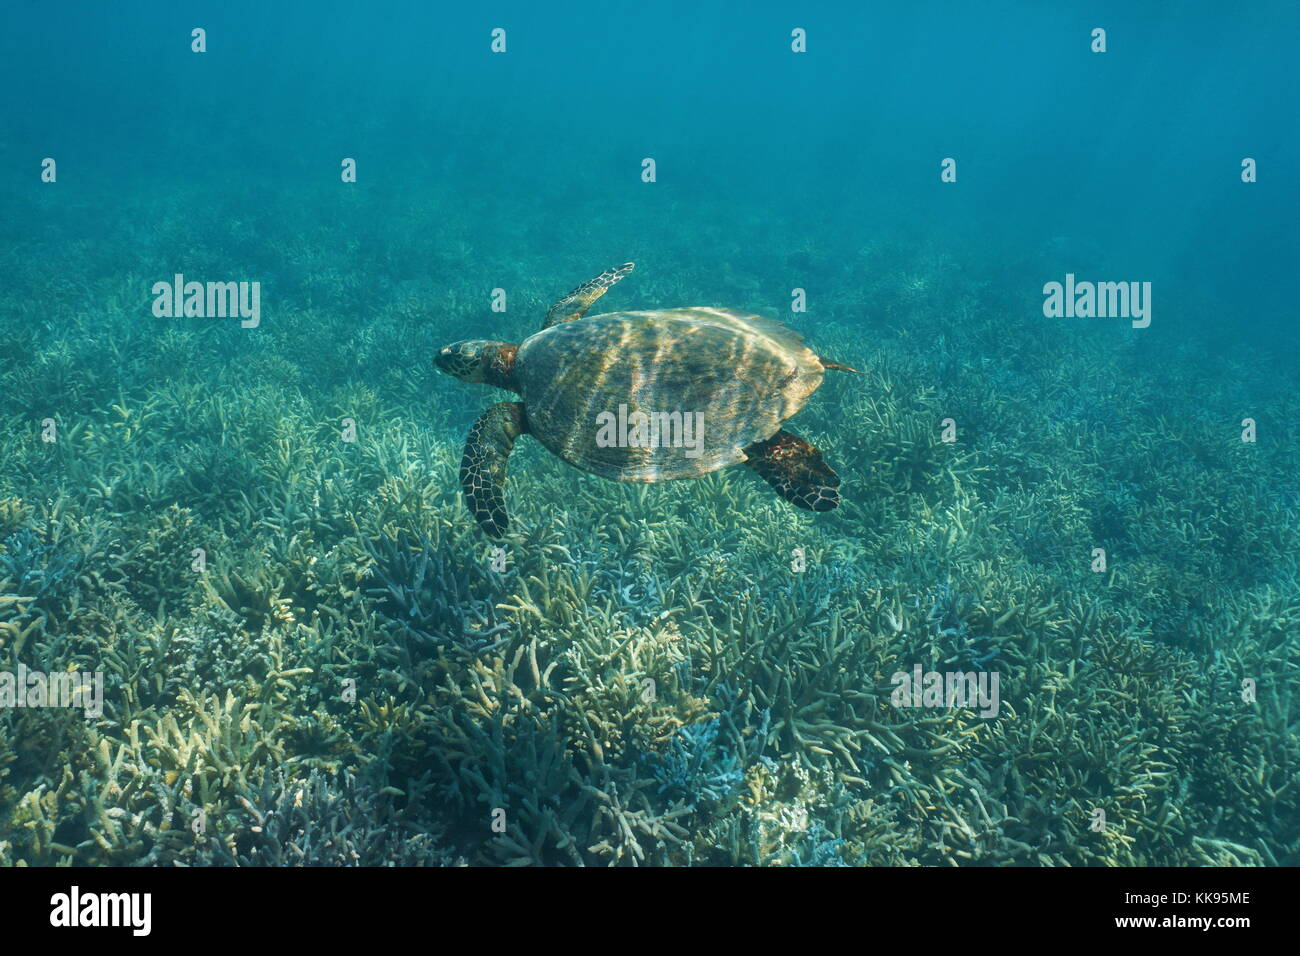 South Pacific ocean underwater a hawksbill sea turtle Eretmochelys imbricata, swims over a coral reef, New Caledonia, - Stock Image